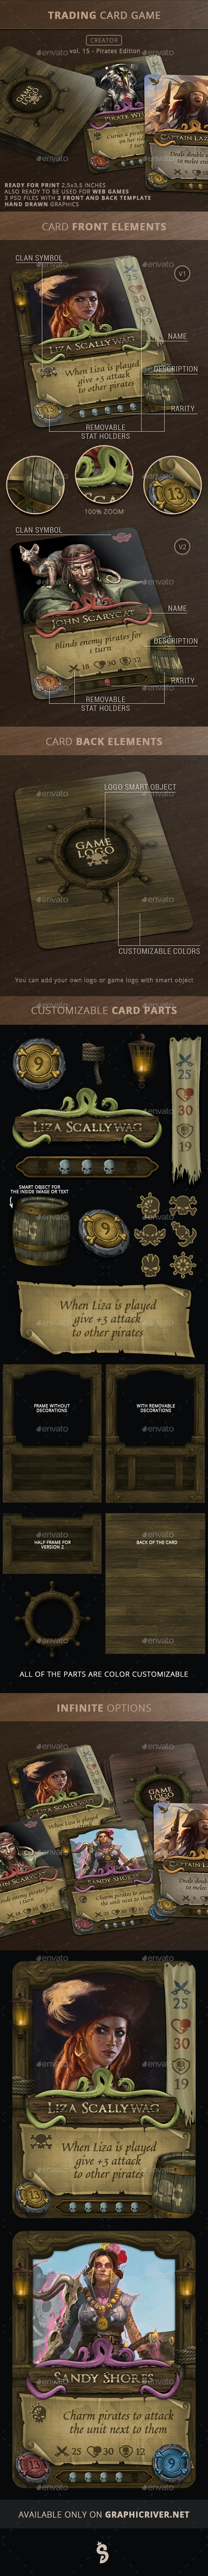 Trading Card Game Creator - Vol 15 - Pirates - Miscellaneous Game Assets